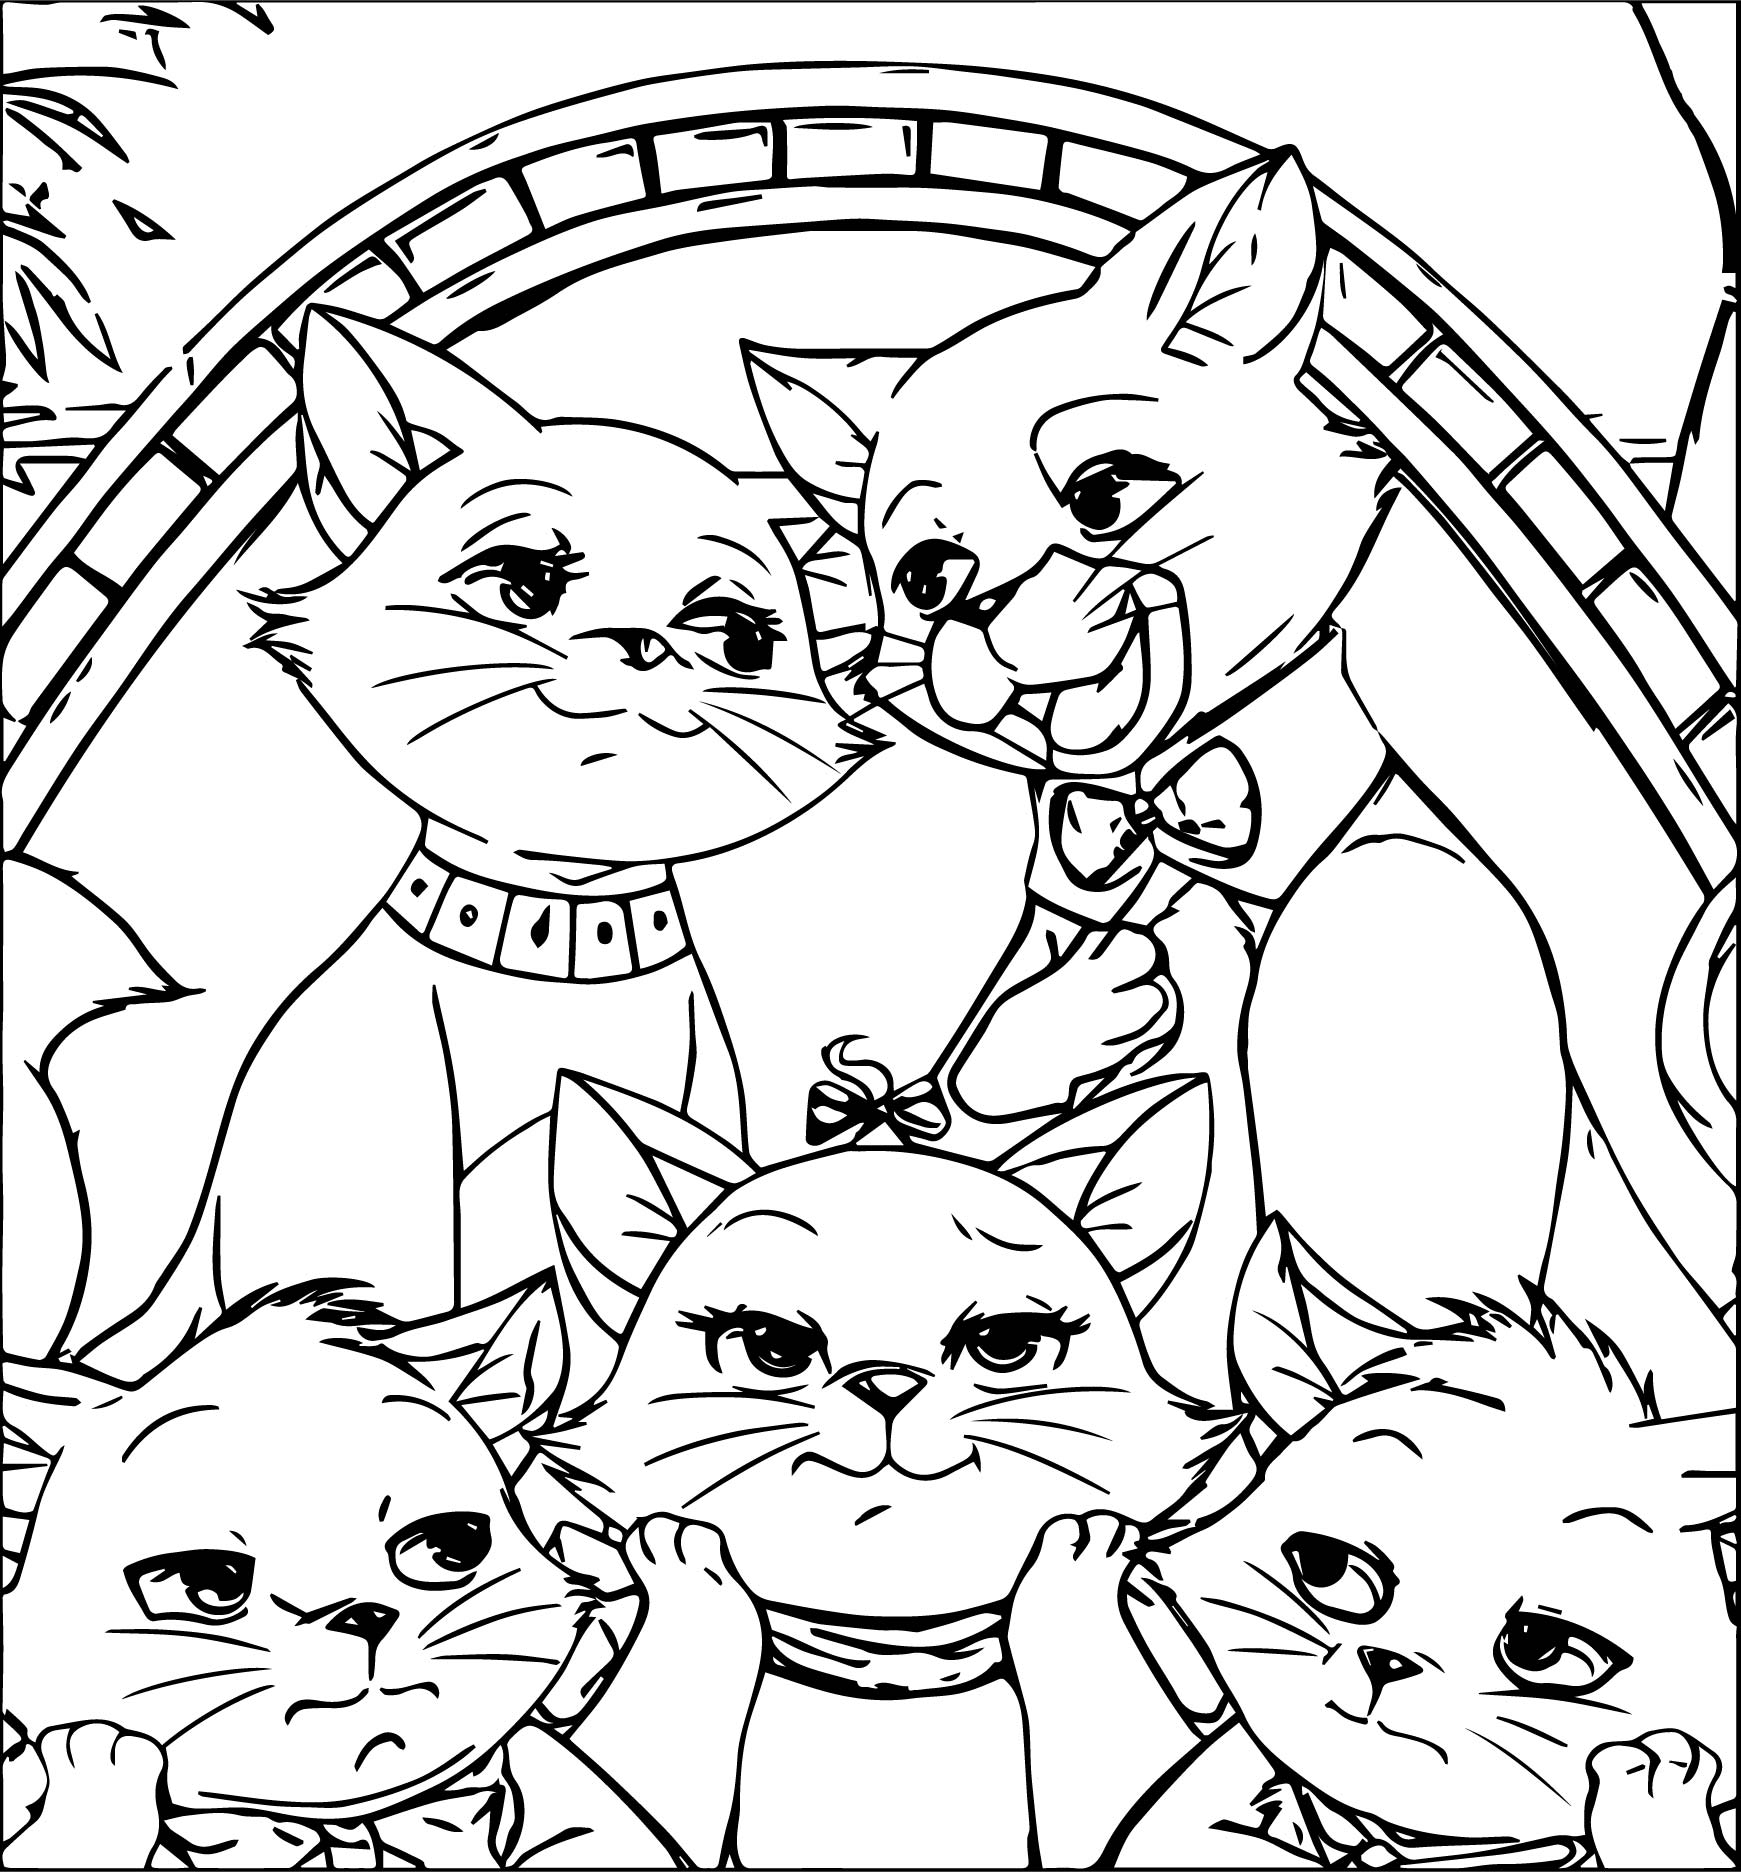 Disney The Aristocats Photo Coloring Page | Wecoloringpage.com